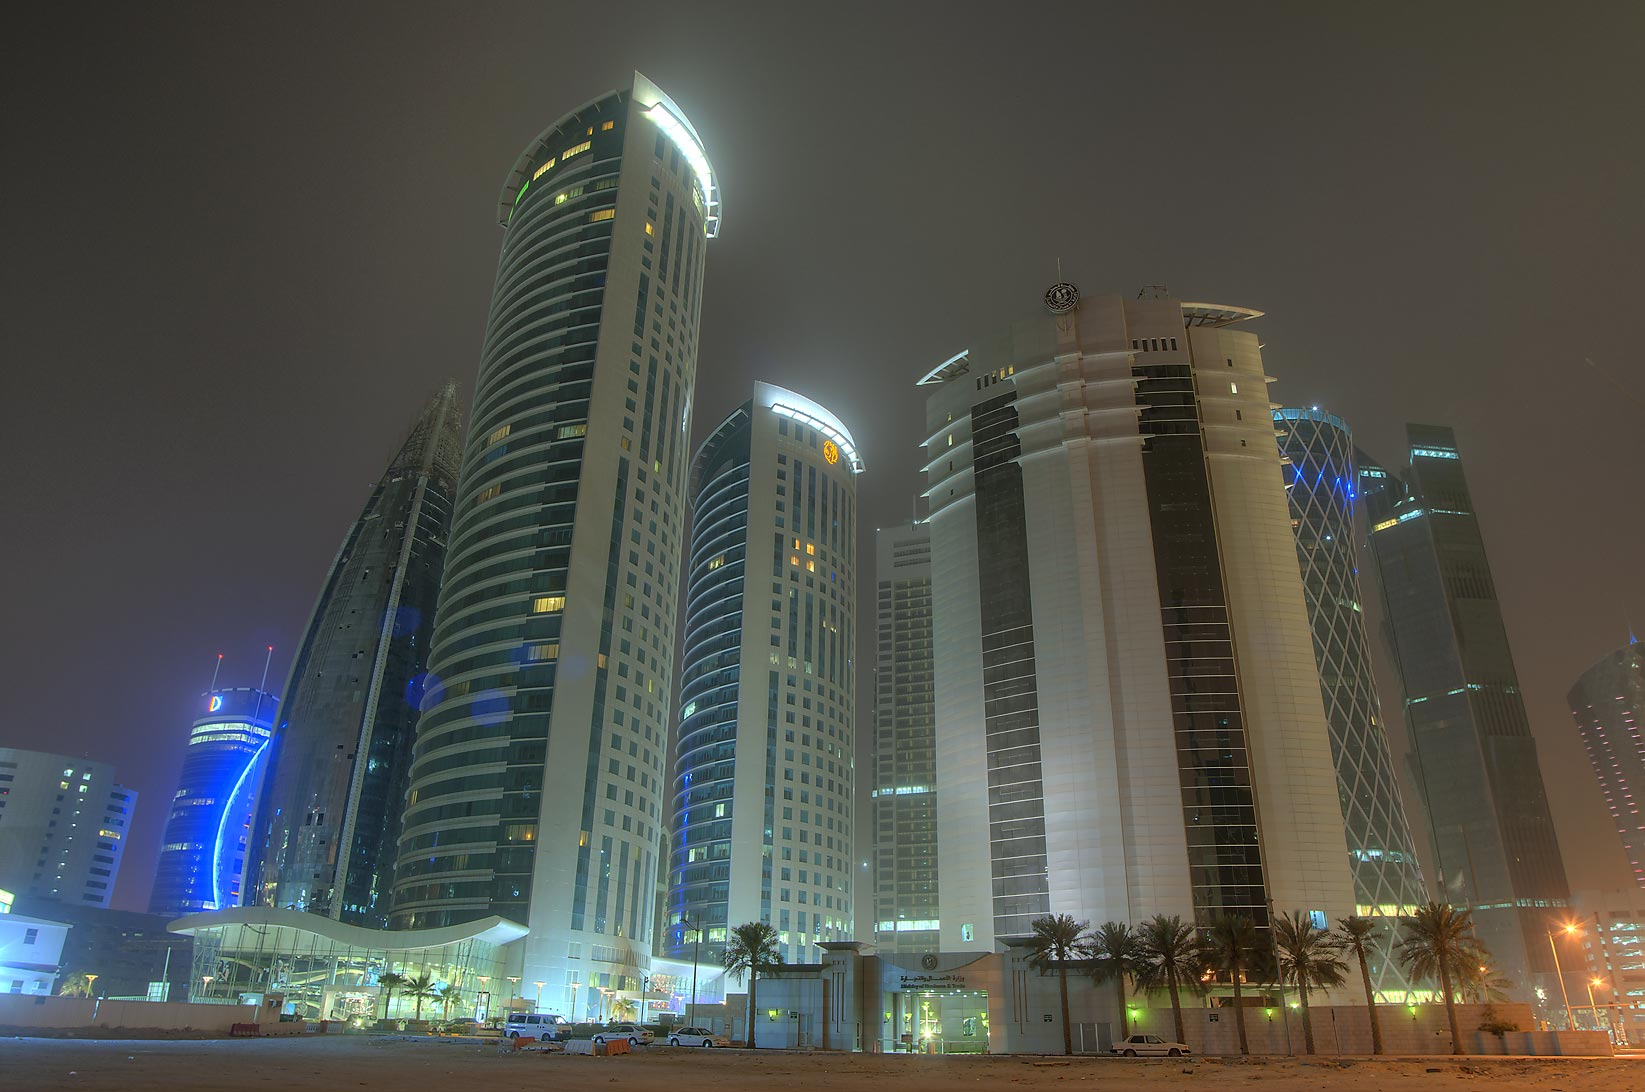 Office towers of West Bay, view from a backyard of City Center Mall. Doha, Qatar